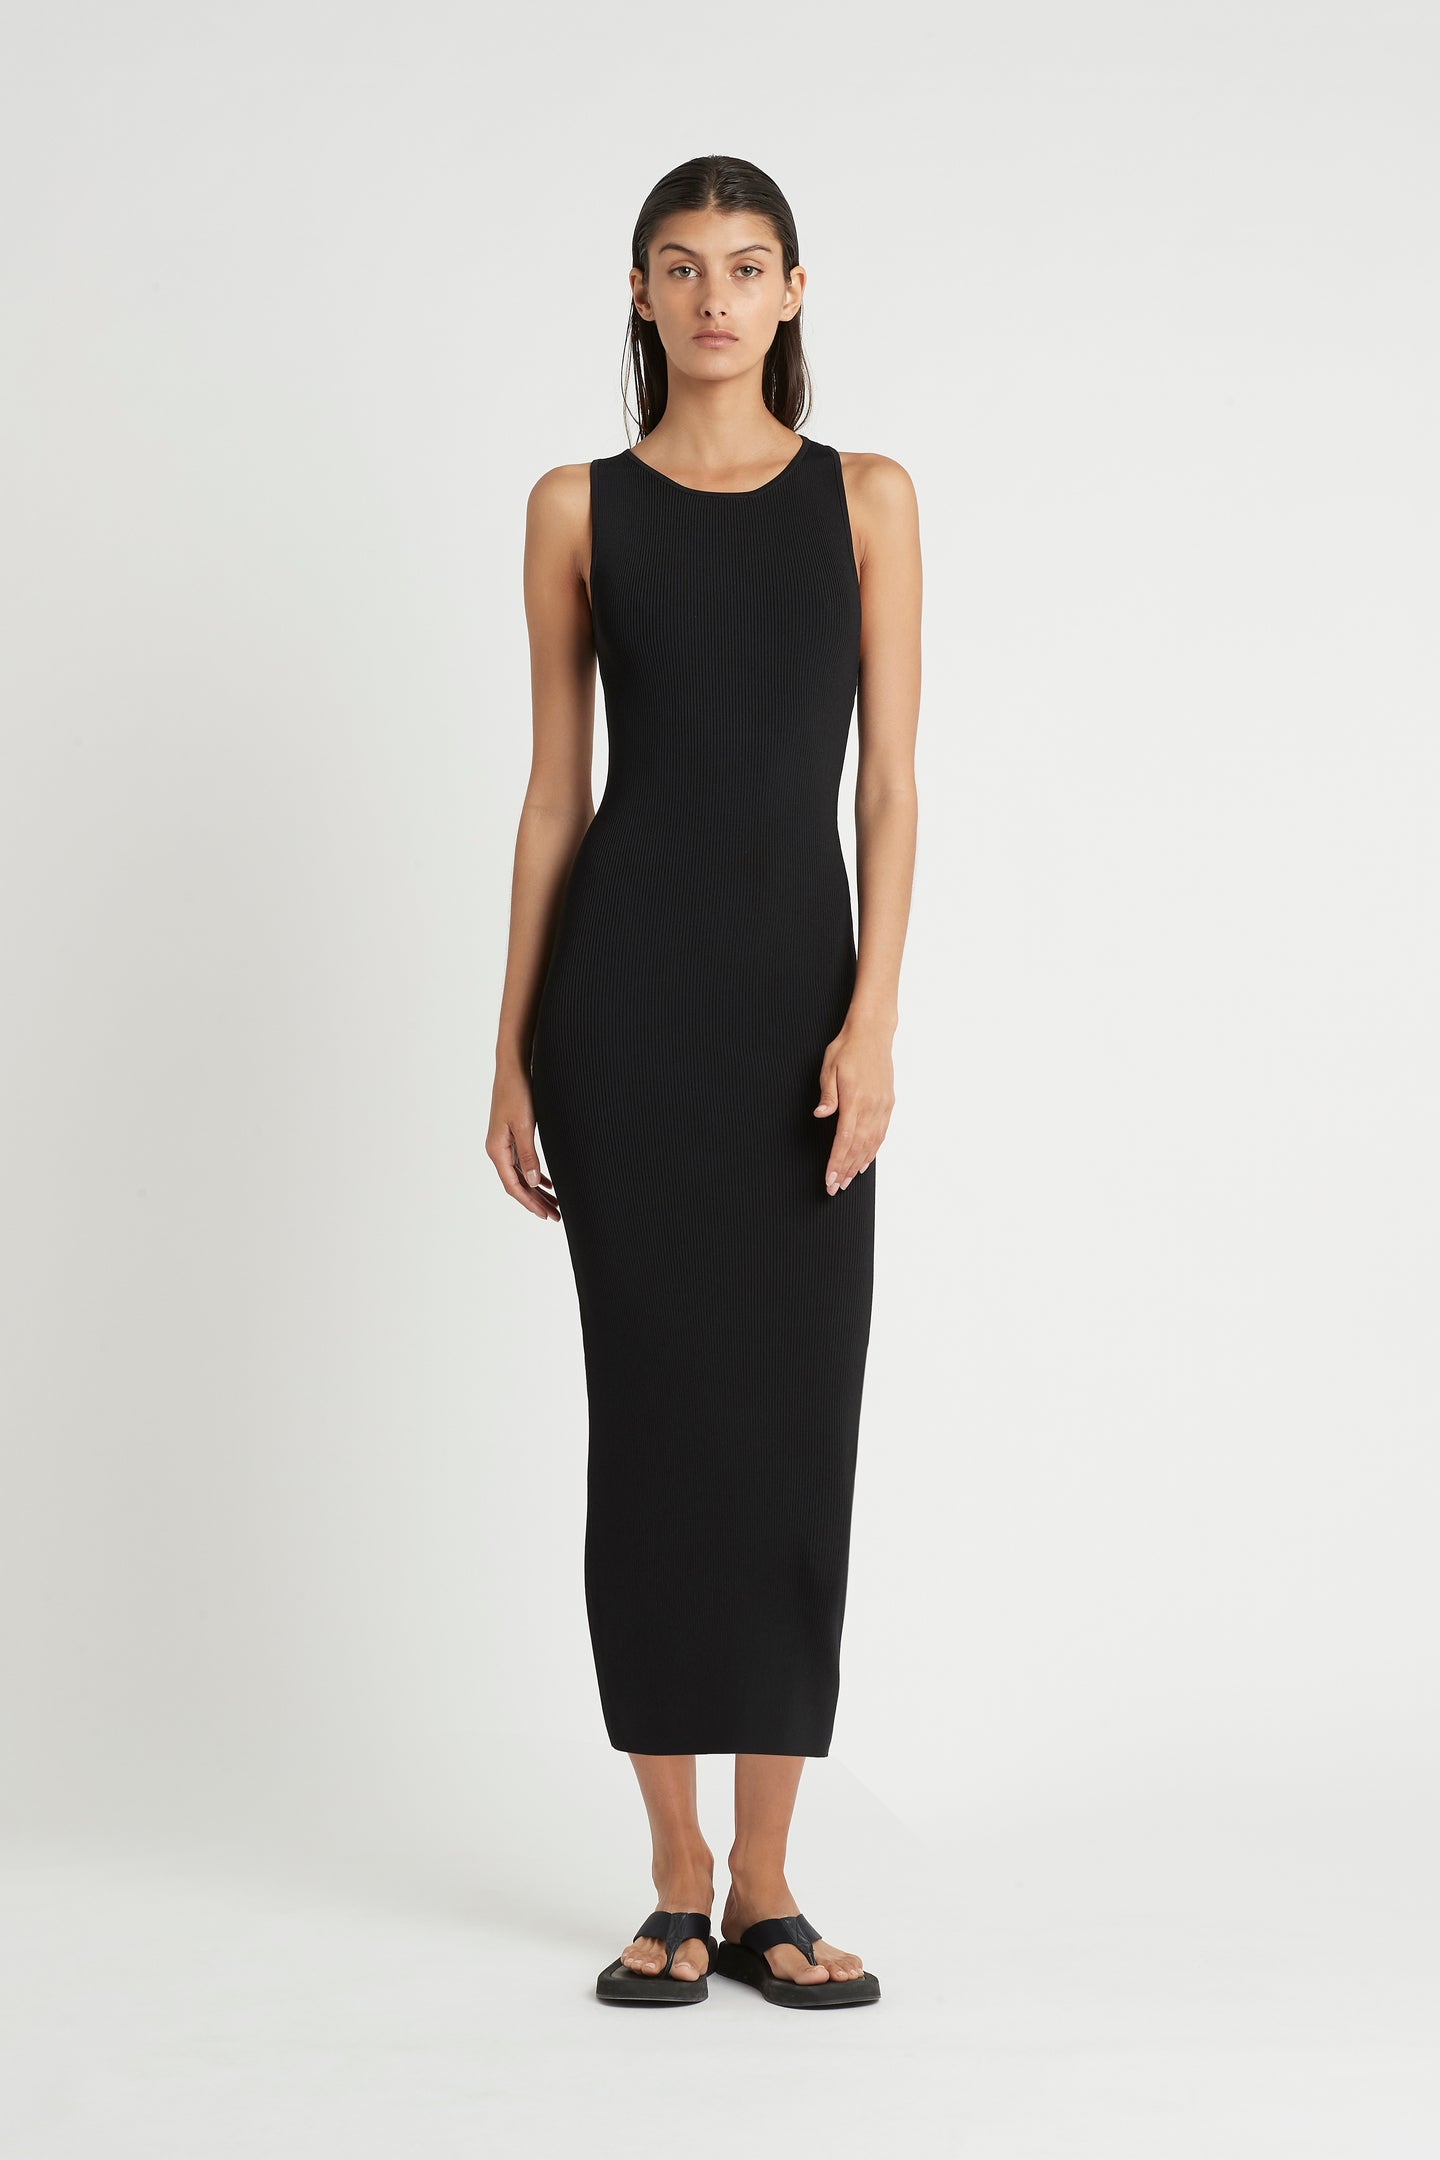 SIR the label MARCELLE OPEN BACK DRESS BLACK